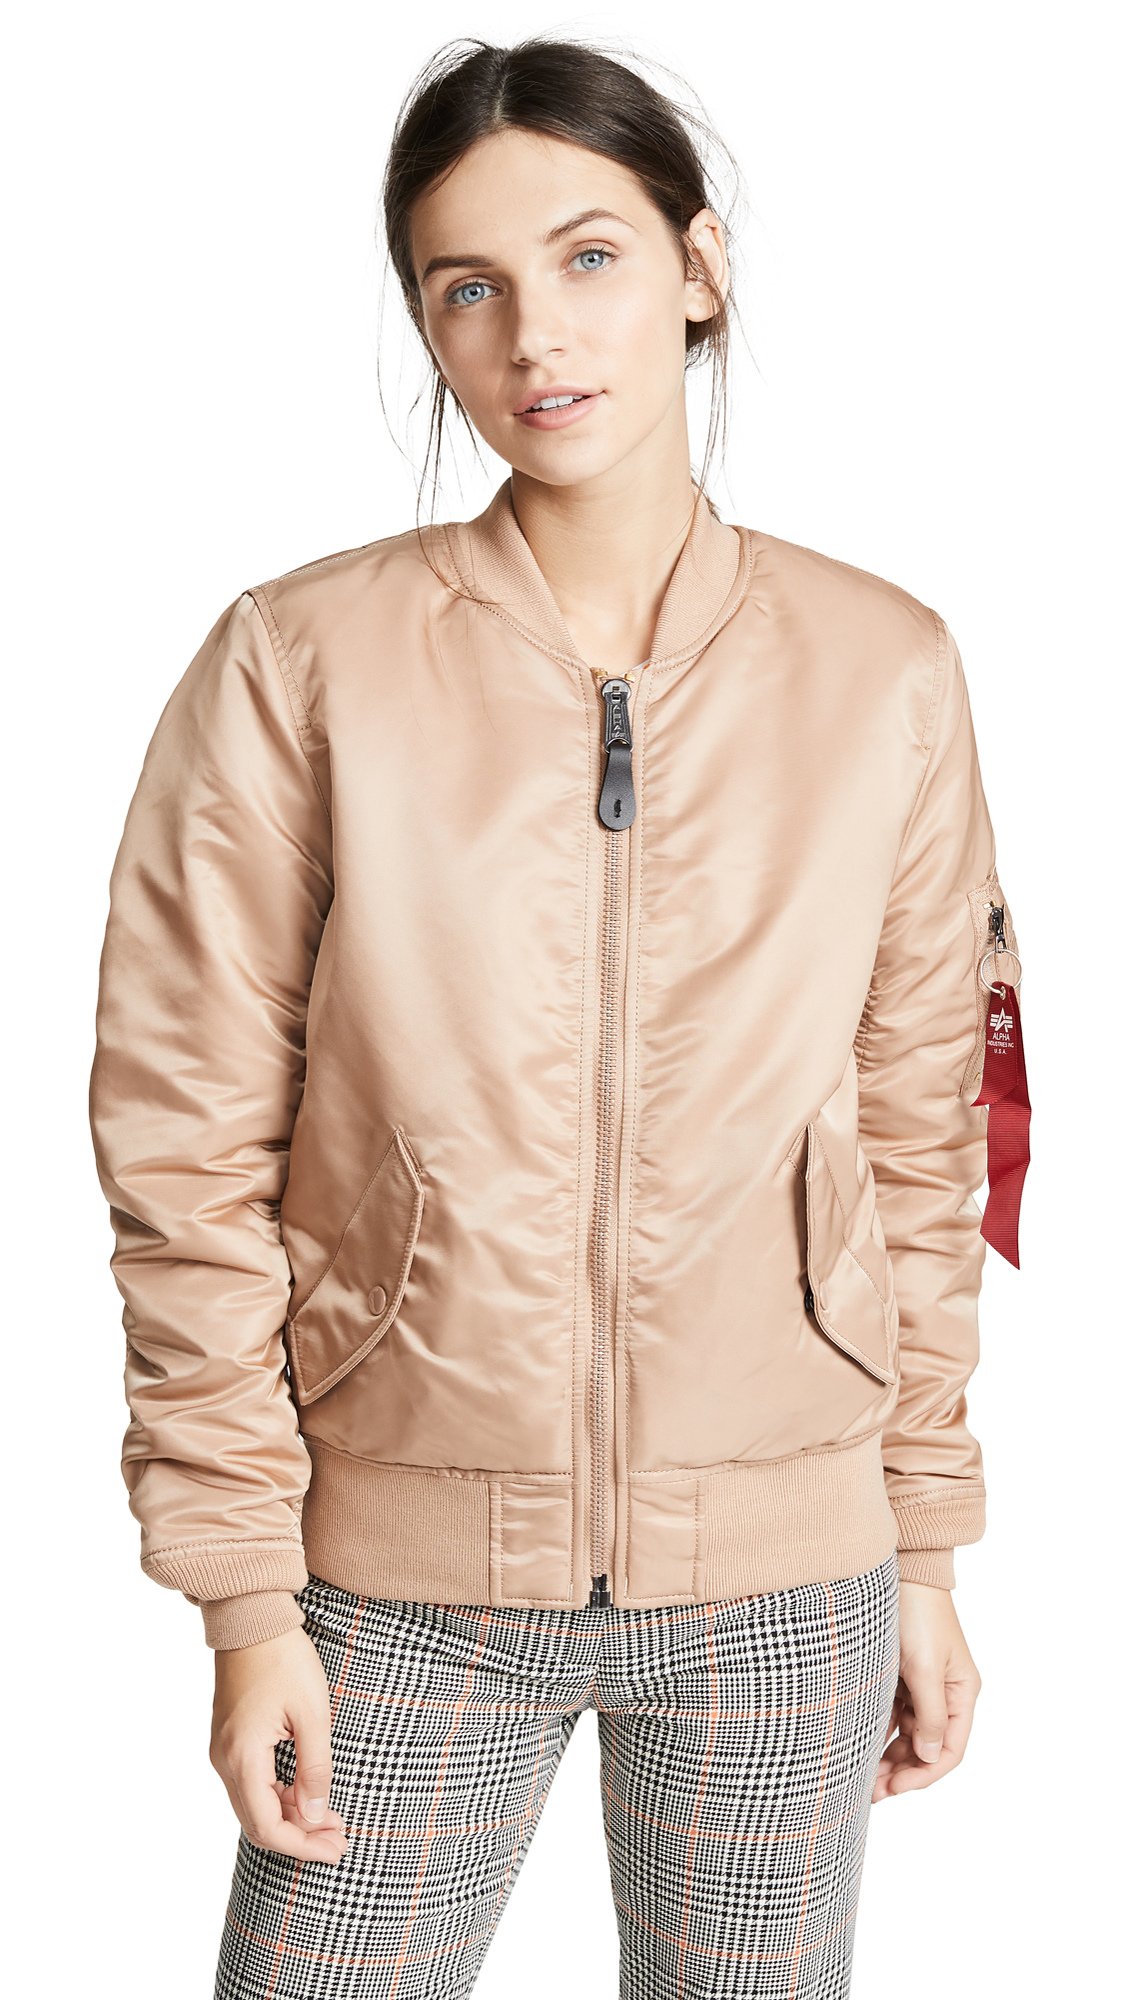 MA-1 MILITARY FLIGHT JACKET